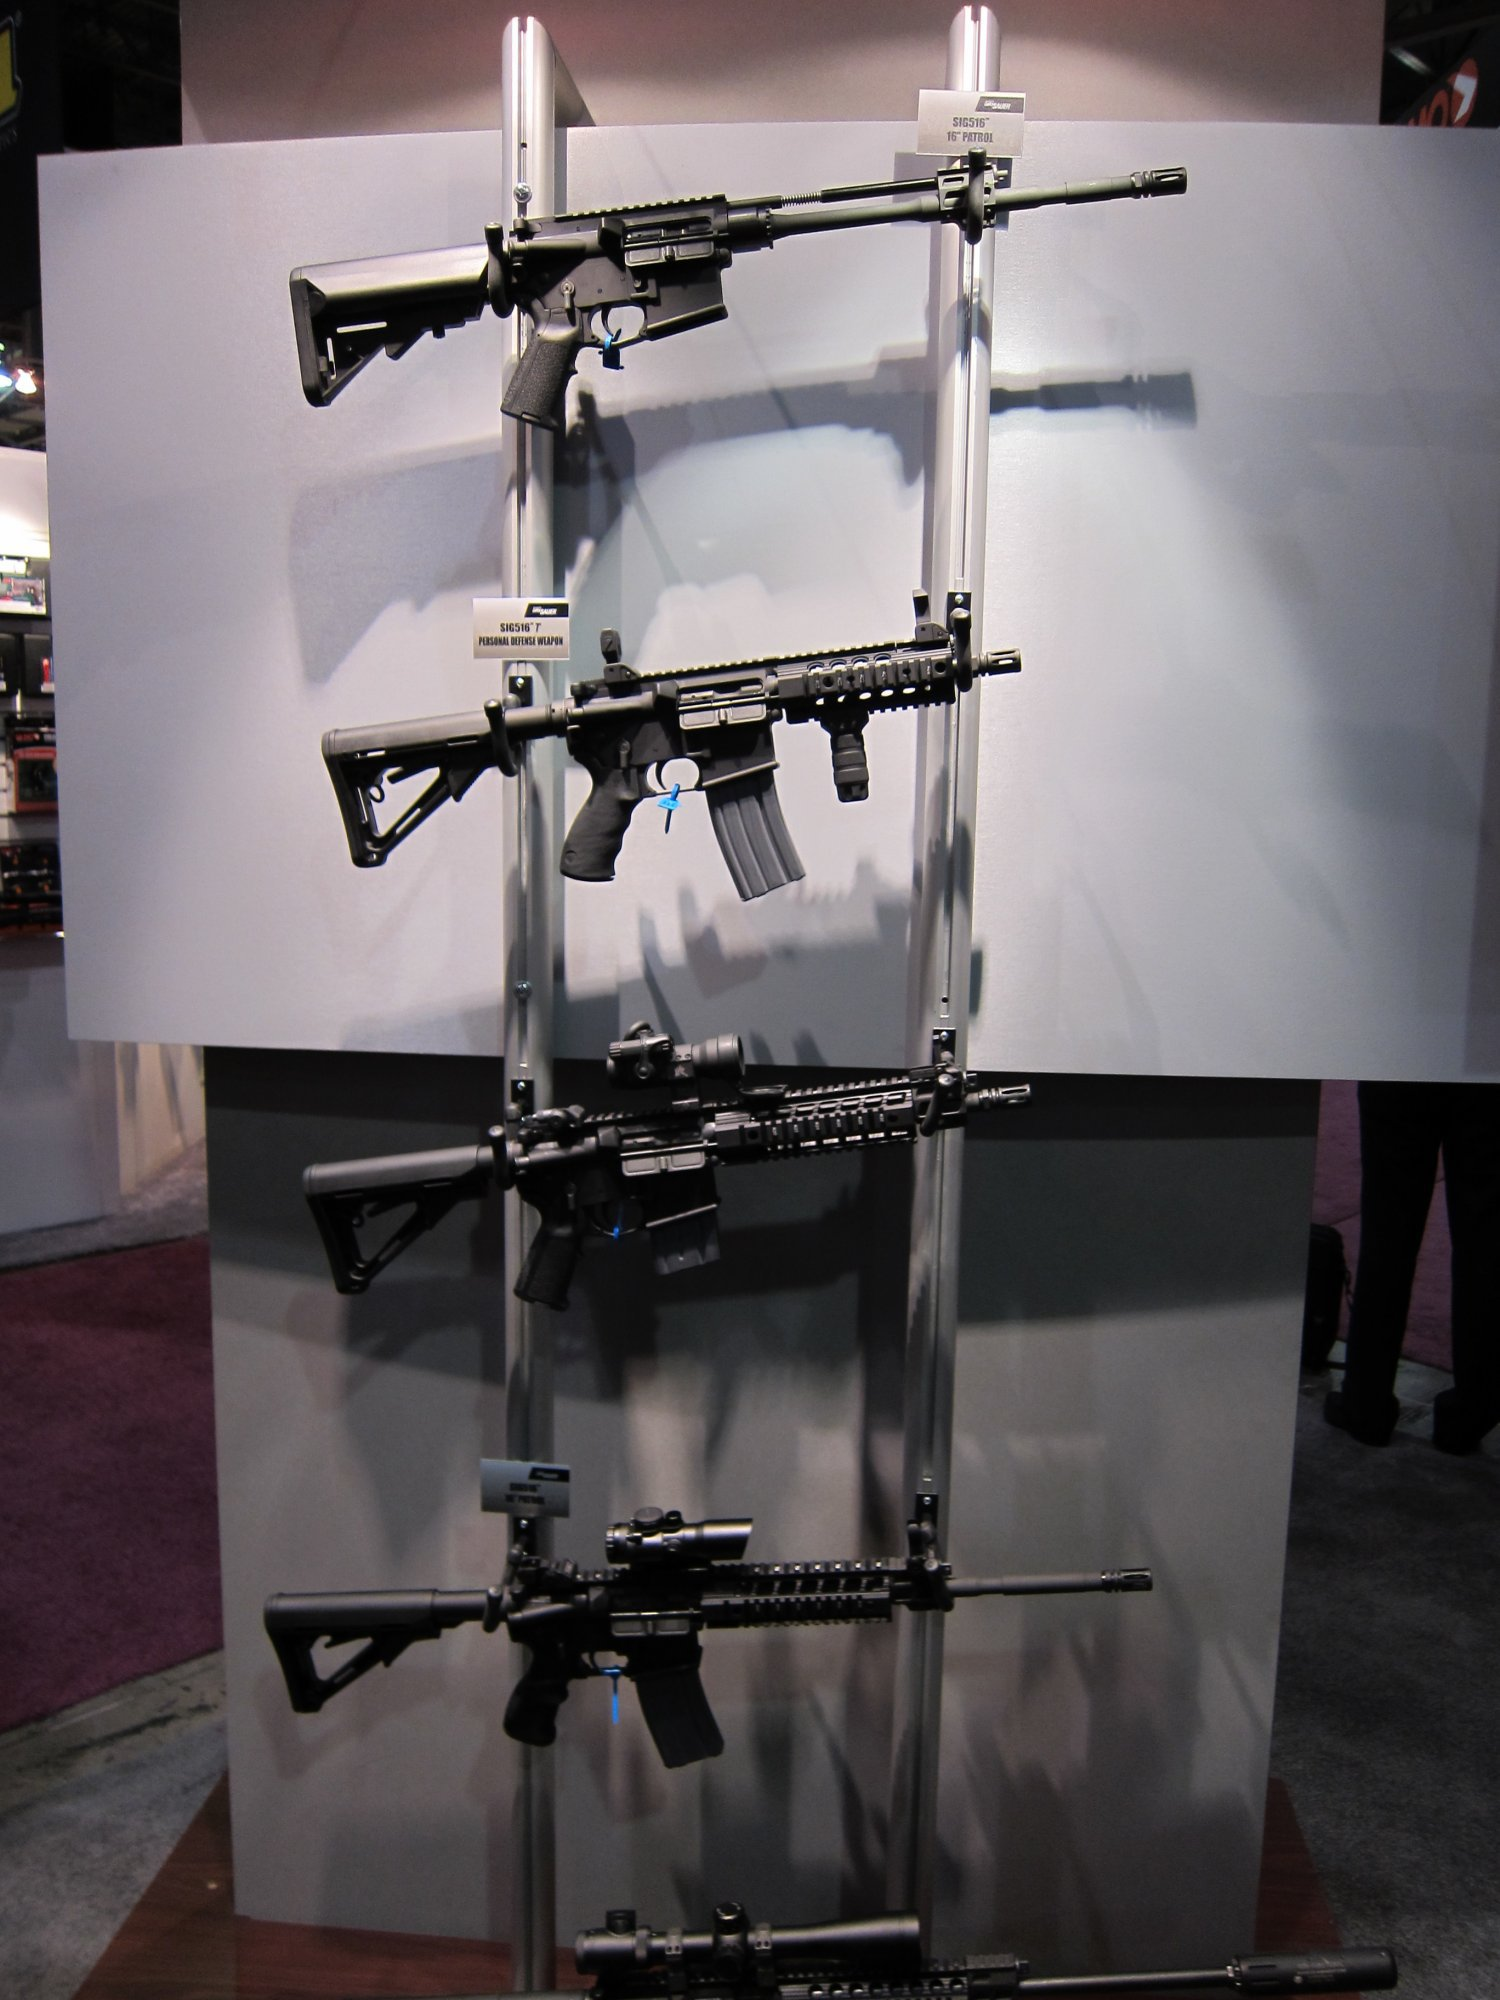 SHOT Show 2010 SIG SAUER SIG516 Gas Piston Op Rod Carbine SBR Series 32 <!  :en  >SIG Sauer SIG516 (5.56mm) and SIG716 (7.62mm) Short Stroke Gas Piston/Op Rod System Tactical AR Rifle/Carbine/SBR Series at SHOT Show 2010 (Photos!) <!  :  >